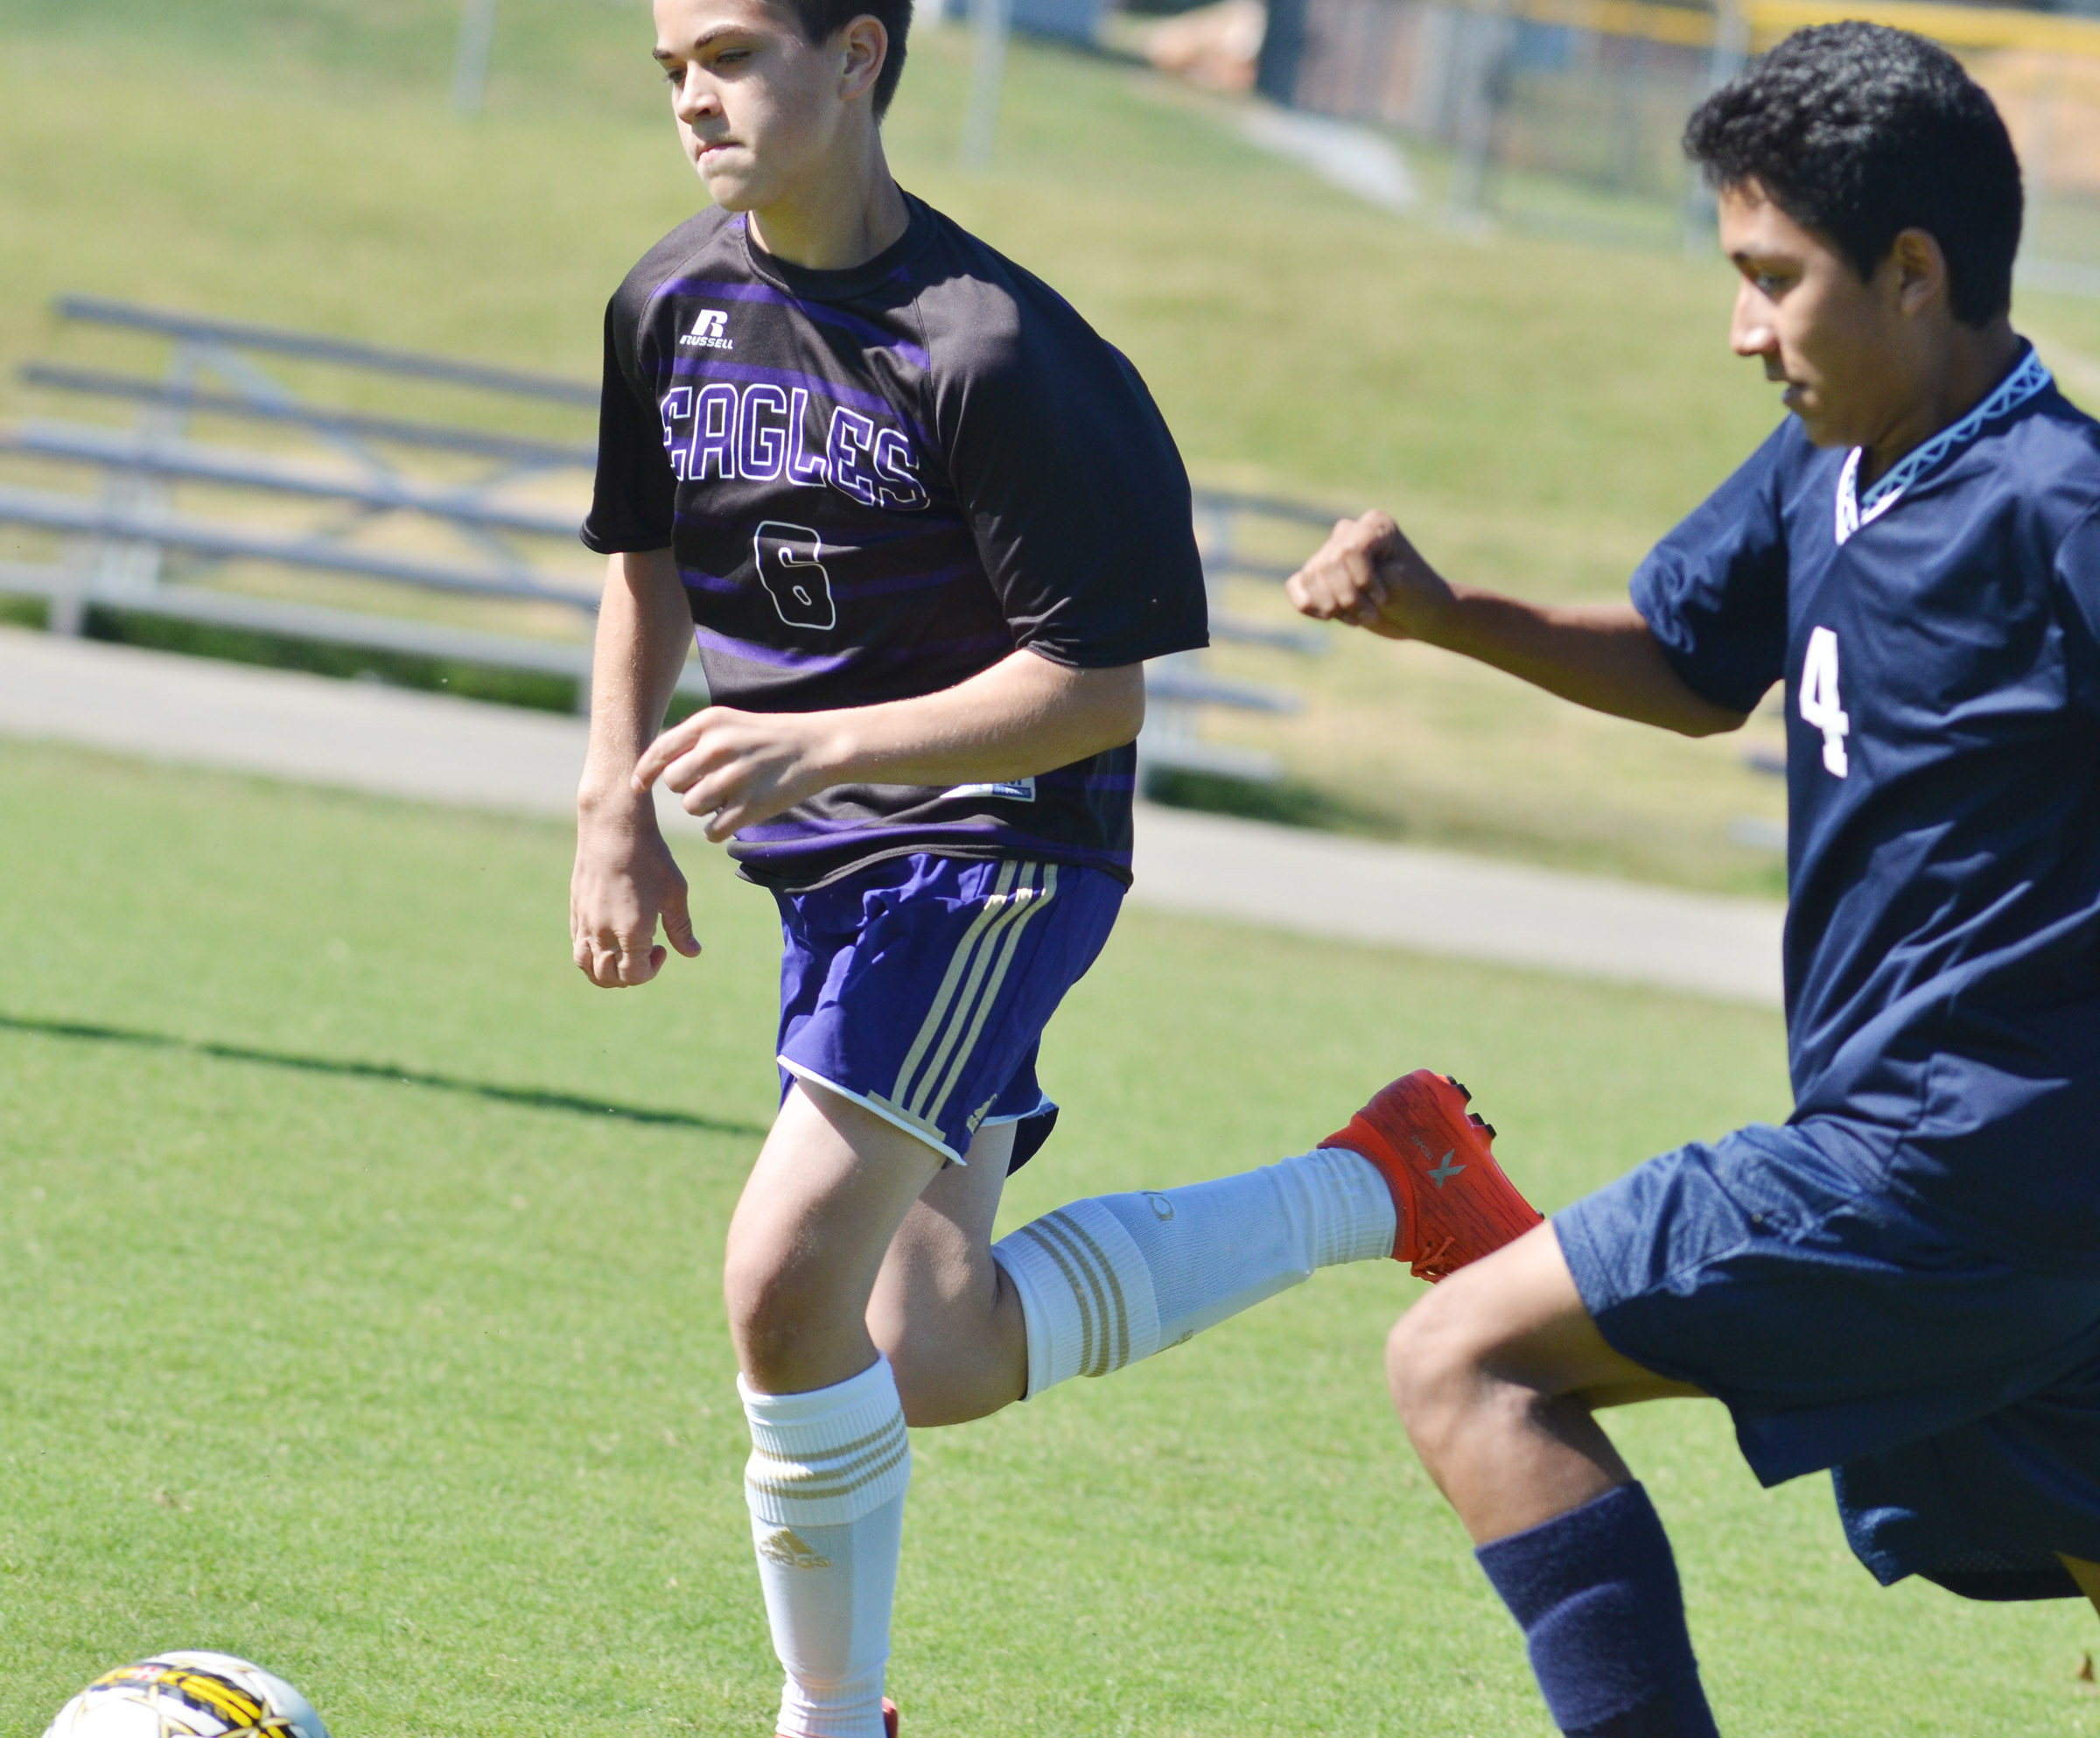 CHS freshman Clark Kidwell kicks the ball.